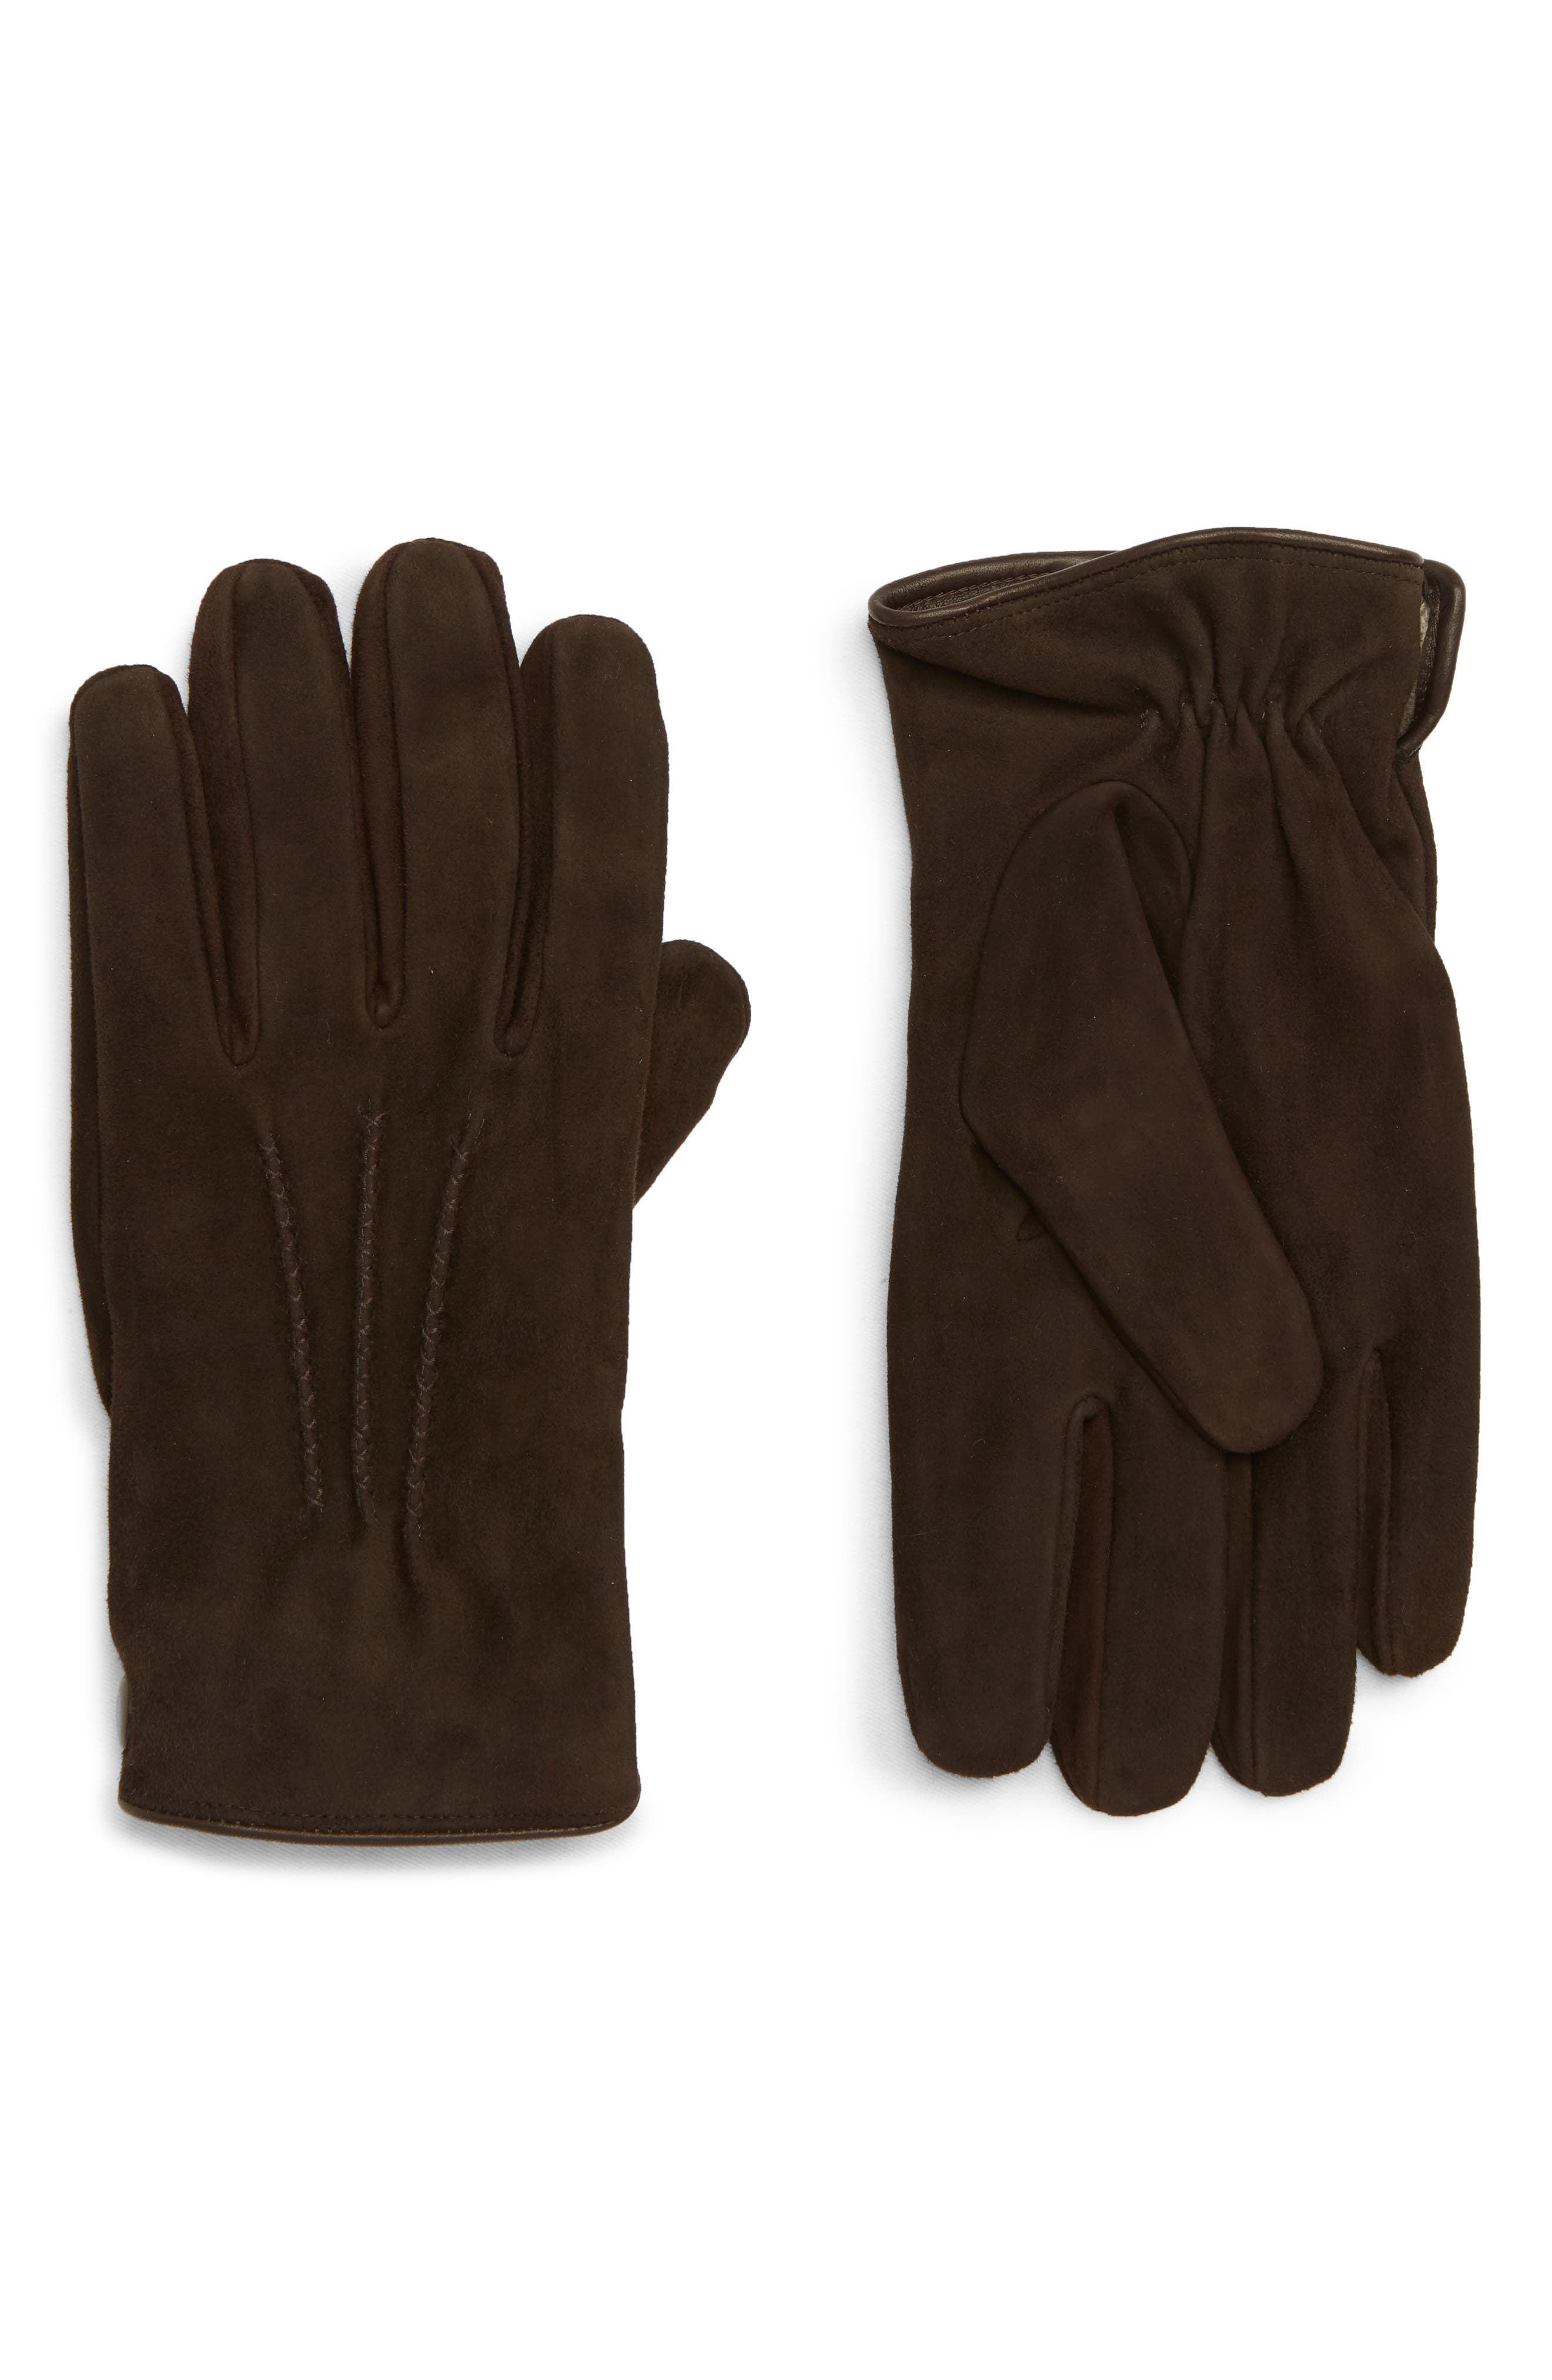 Suede Gloves,                             Main thumbnail 1, color,                             BROWN